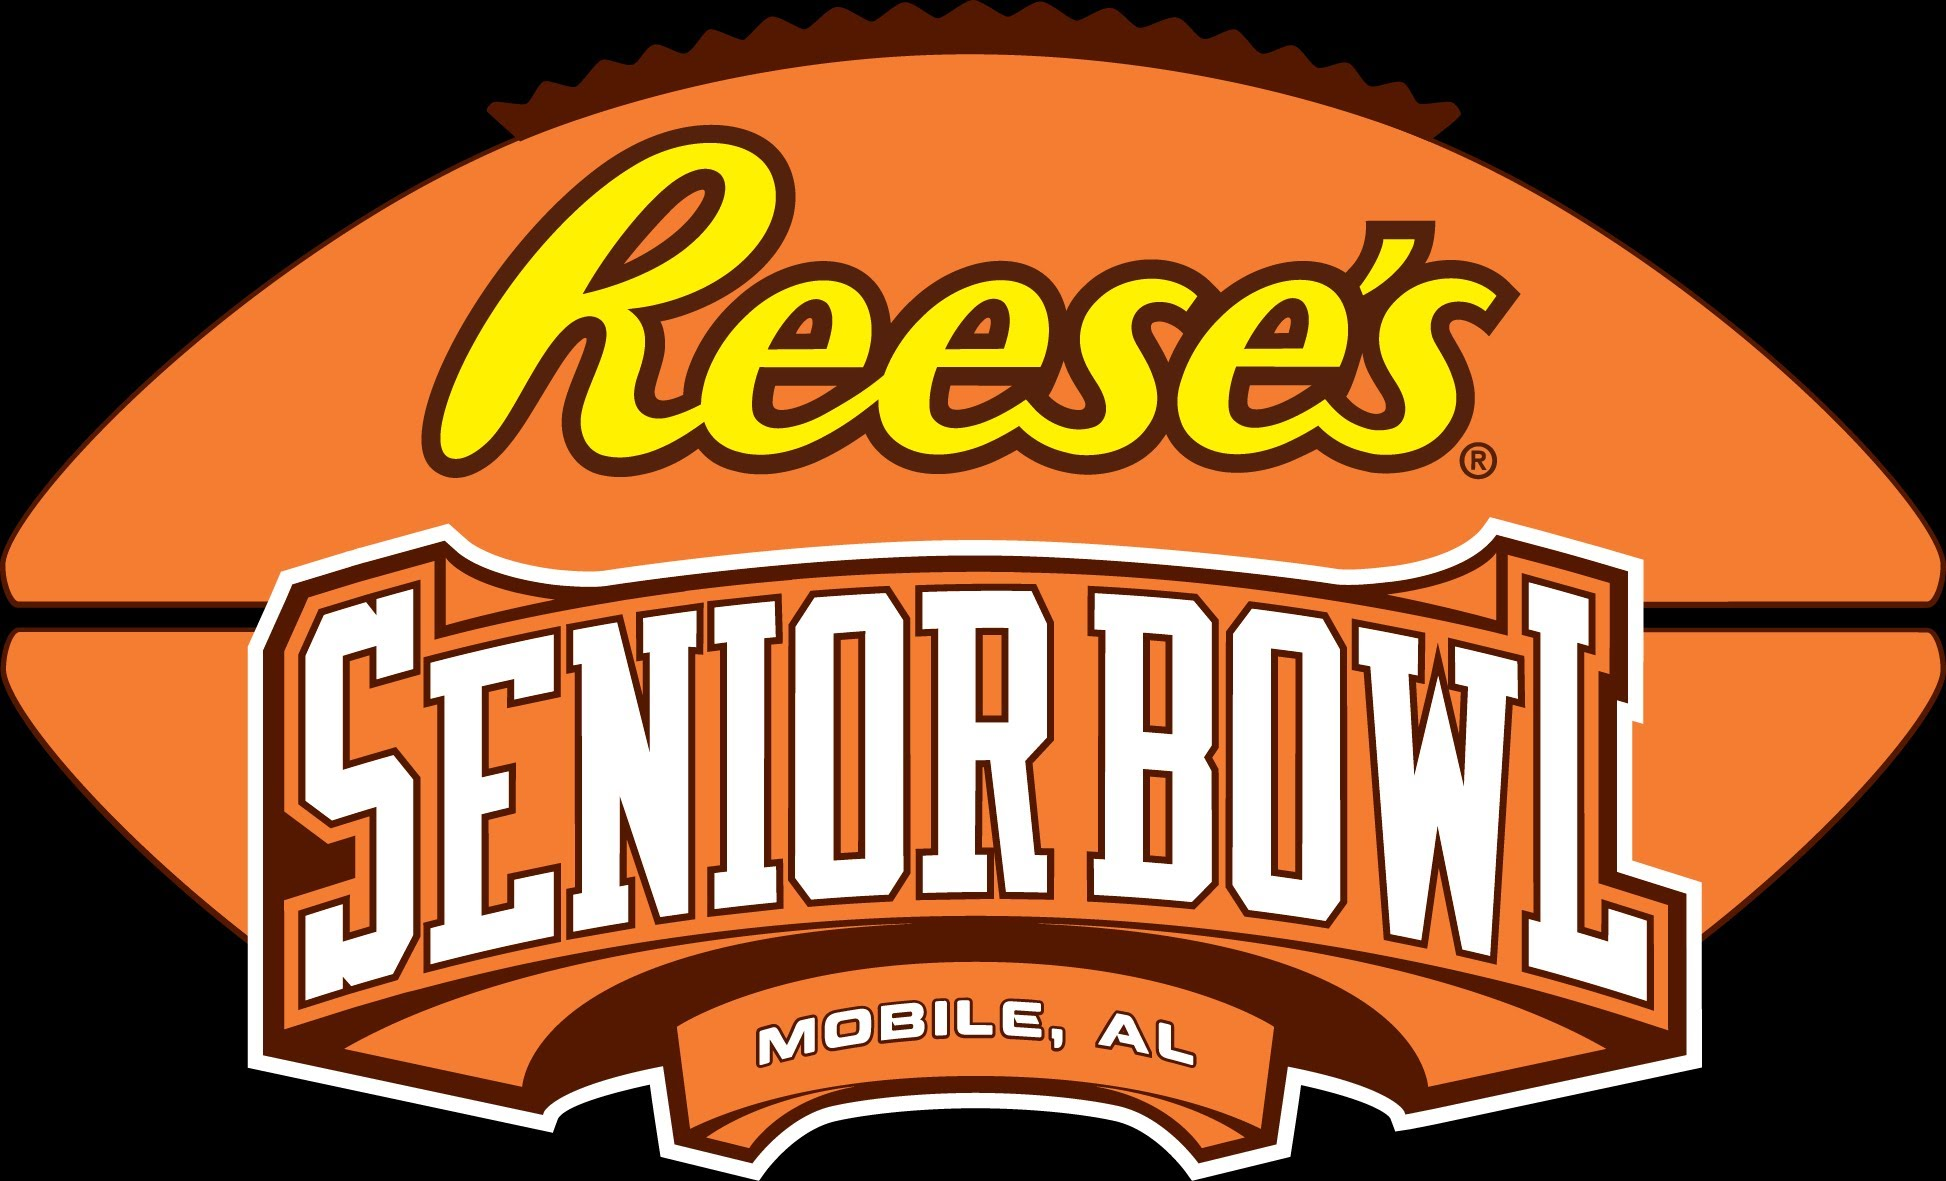 Dawkins, Reddick Shine at New Positions in Senior Bowl